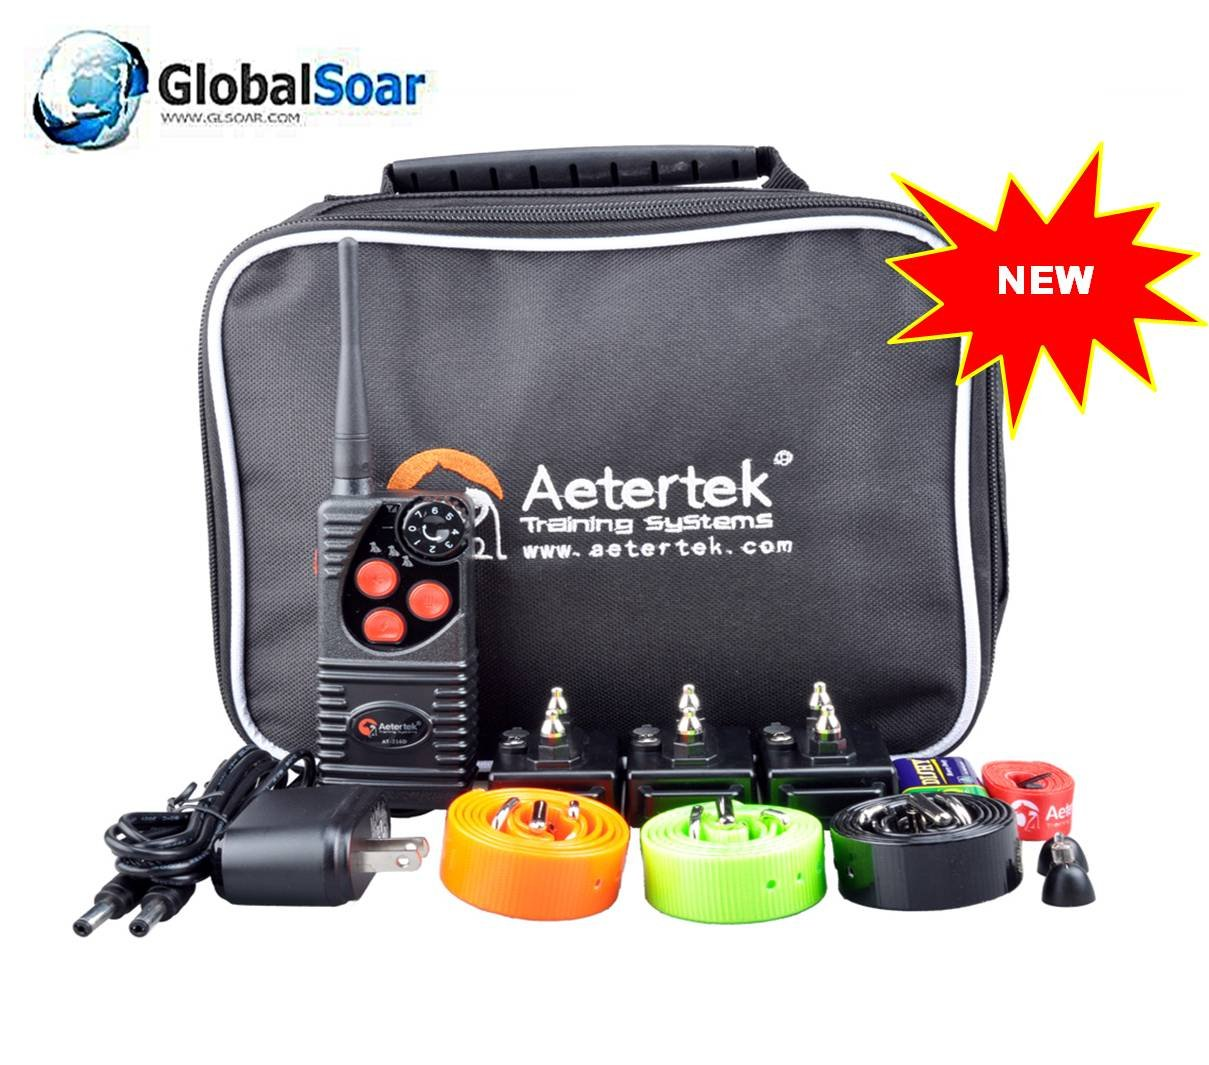 Aetertek 216D-550S-3 600 Yard 7 Level 1 Dog Training Anti Bark & Waterproof Collar